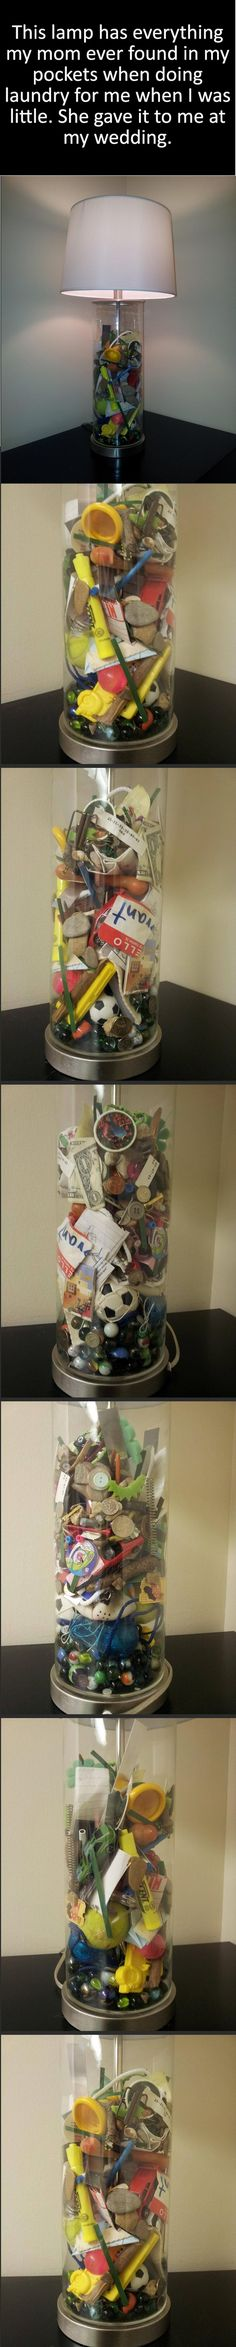 A mother saved all the things she found on his son pockets when doing the laundry. She gave him this lamp with all things found for his wedding.  I've seen this done with baby's shoes for the first two years too.   # Pin   for Pinterest #